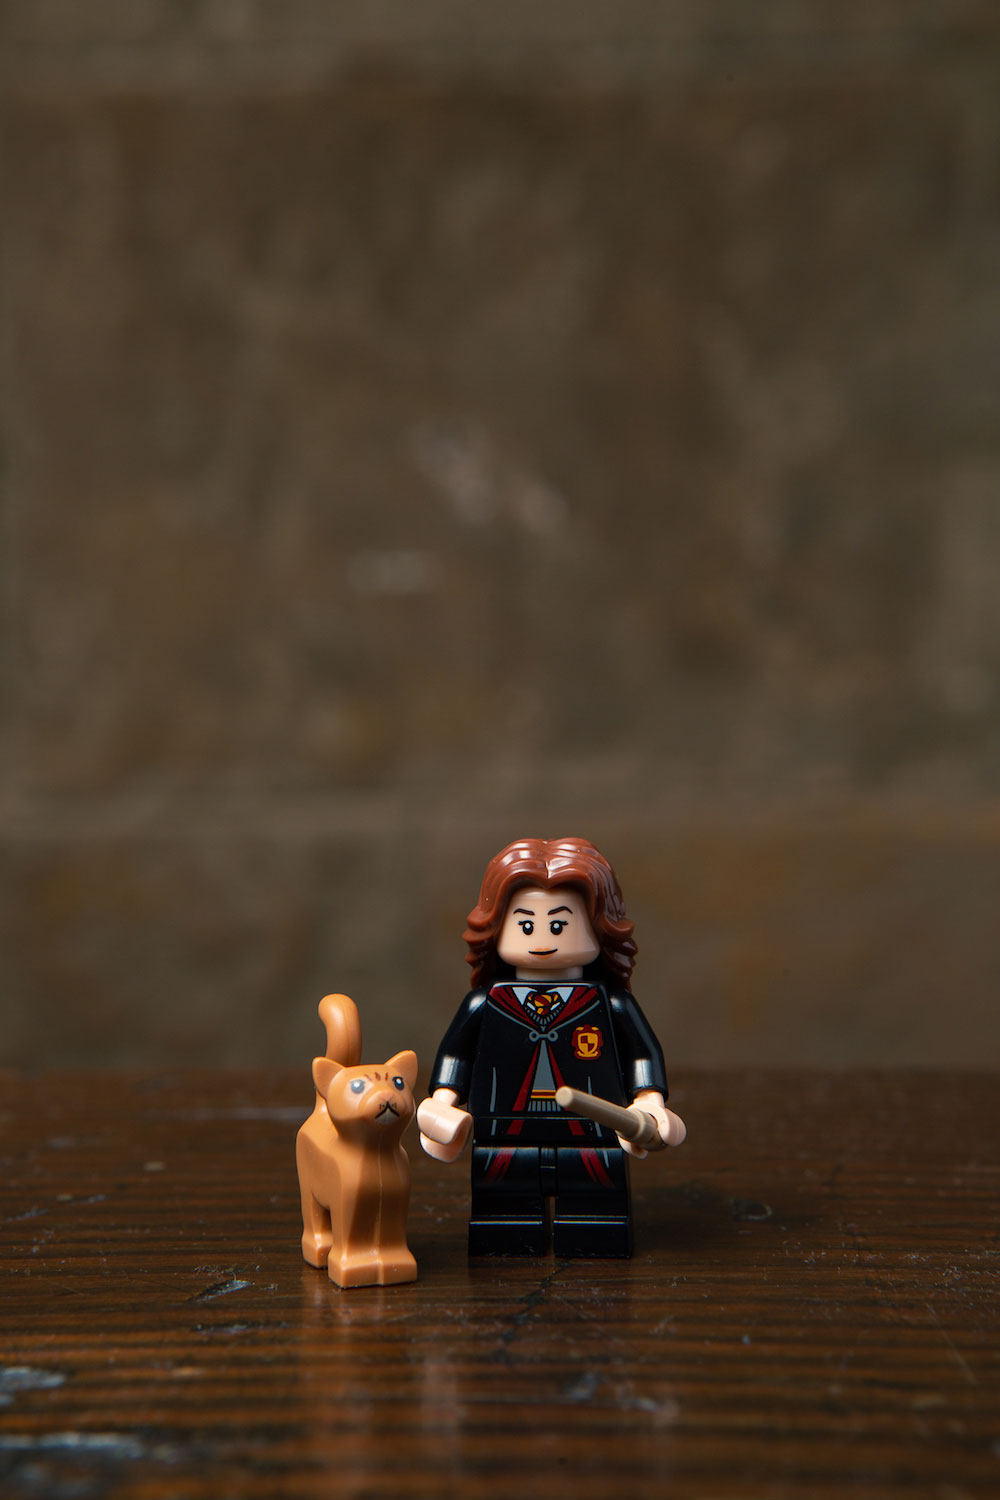 Hermione brought along her fluffy friend in the LEGO minifigures series. We wonder how Ron and Scabbers feel about that…